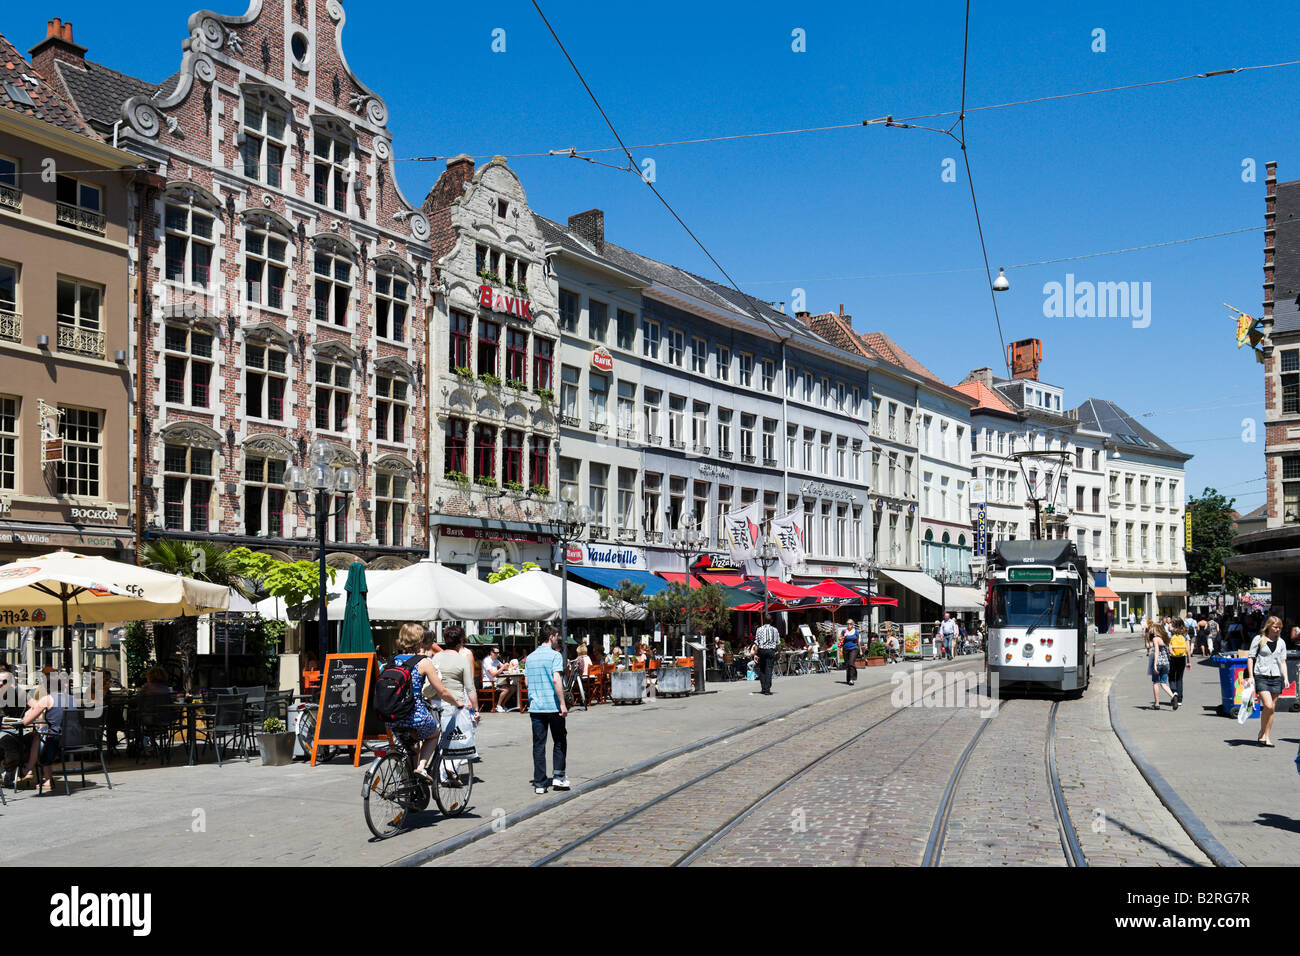 Tram and Cafe on the Korenmarkt in the historic city centre, Ghent, Belgium - Stock Image